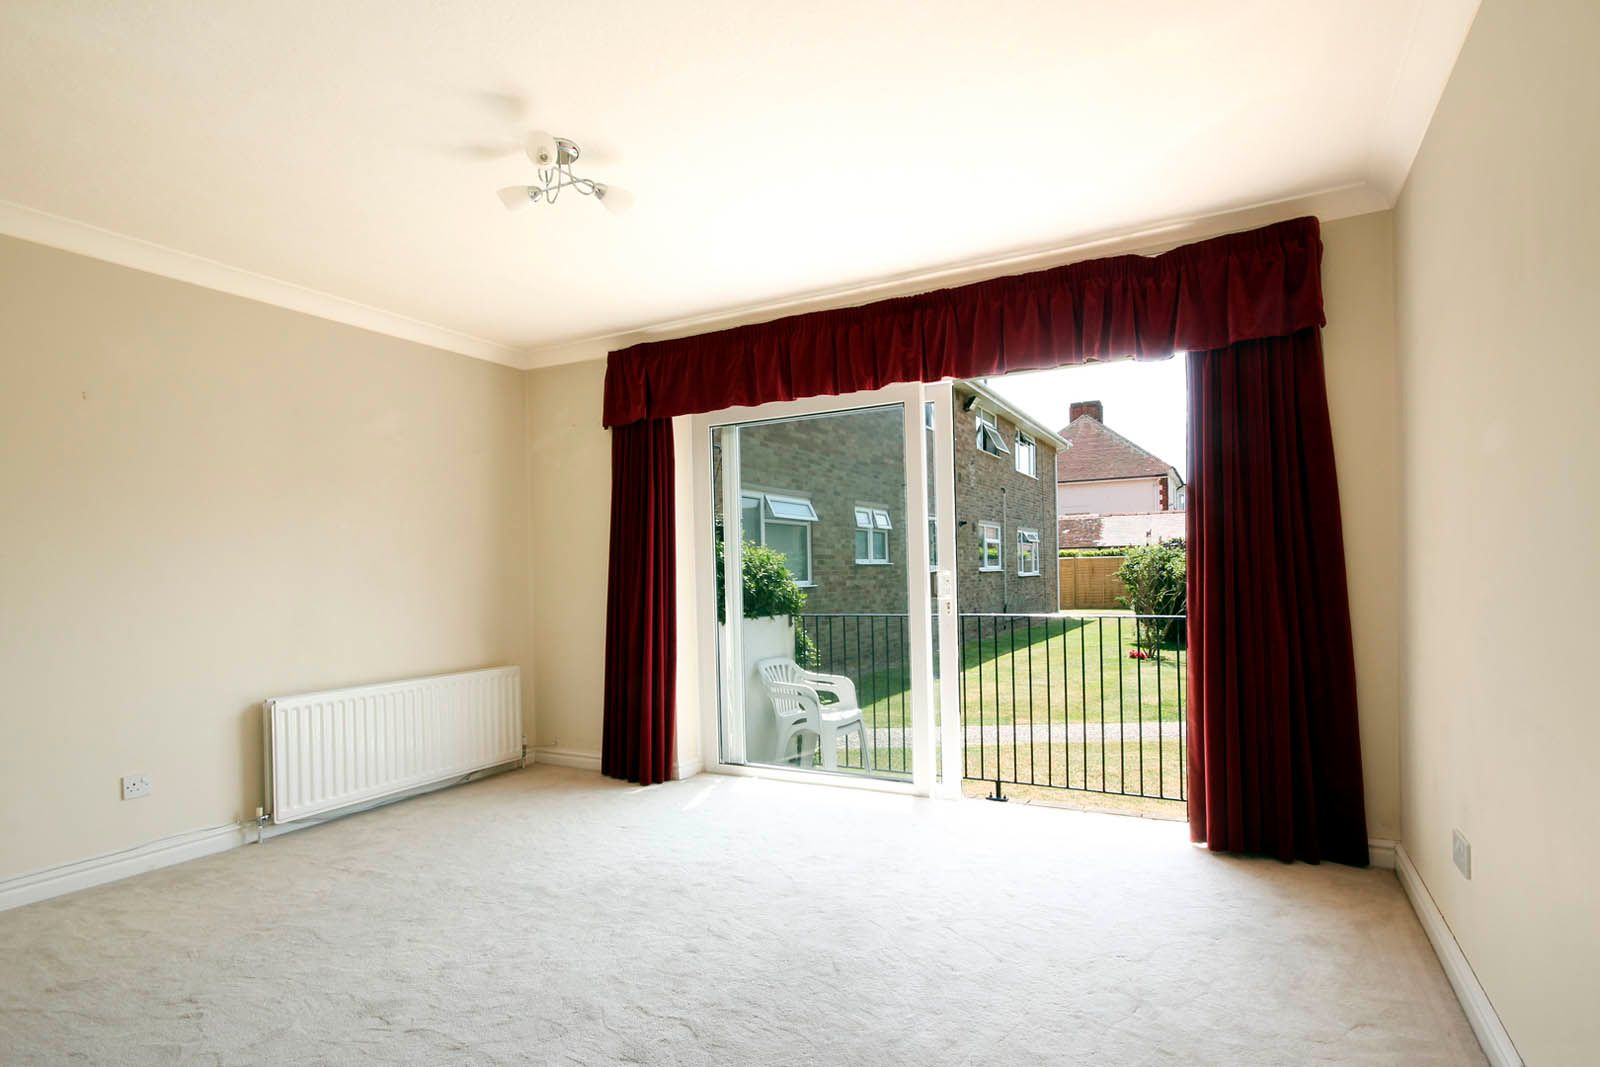 2 bed Apartment for sale in Rustington - Living Room (Property Image 3)